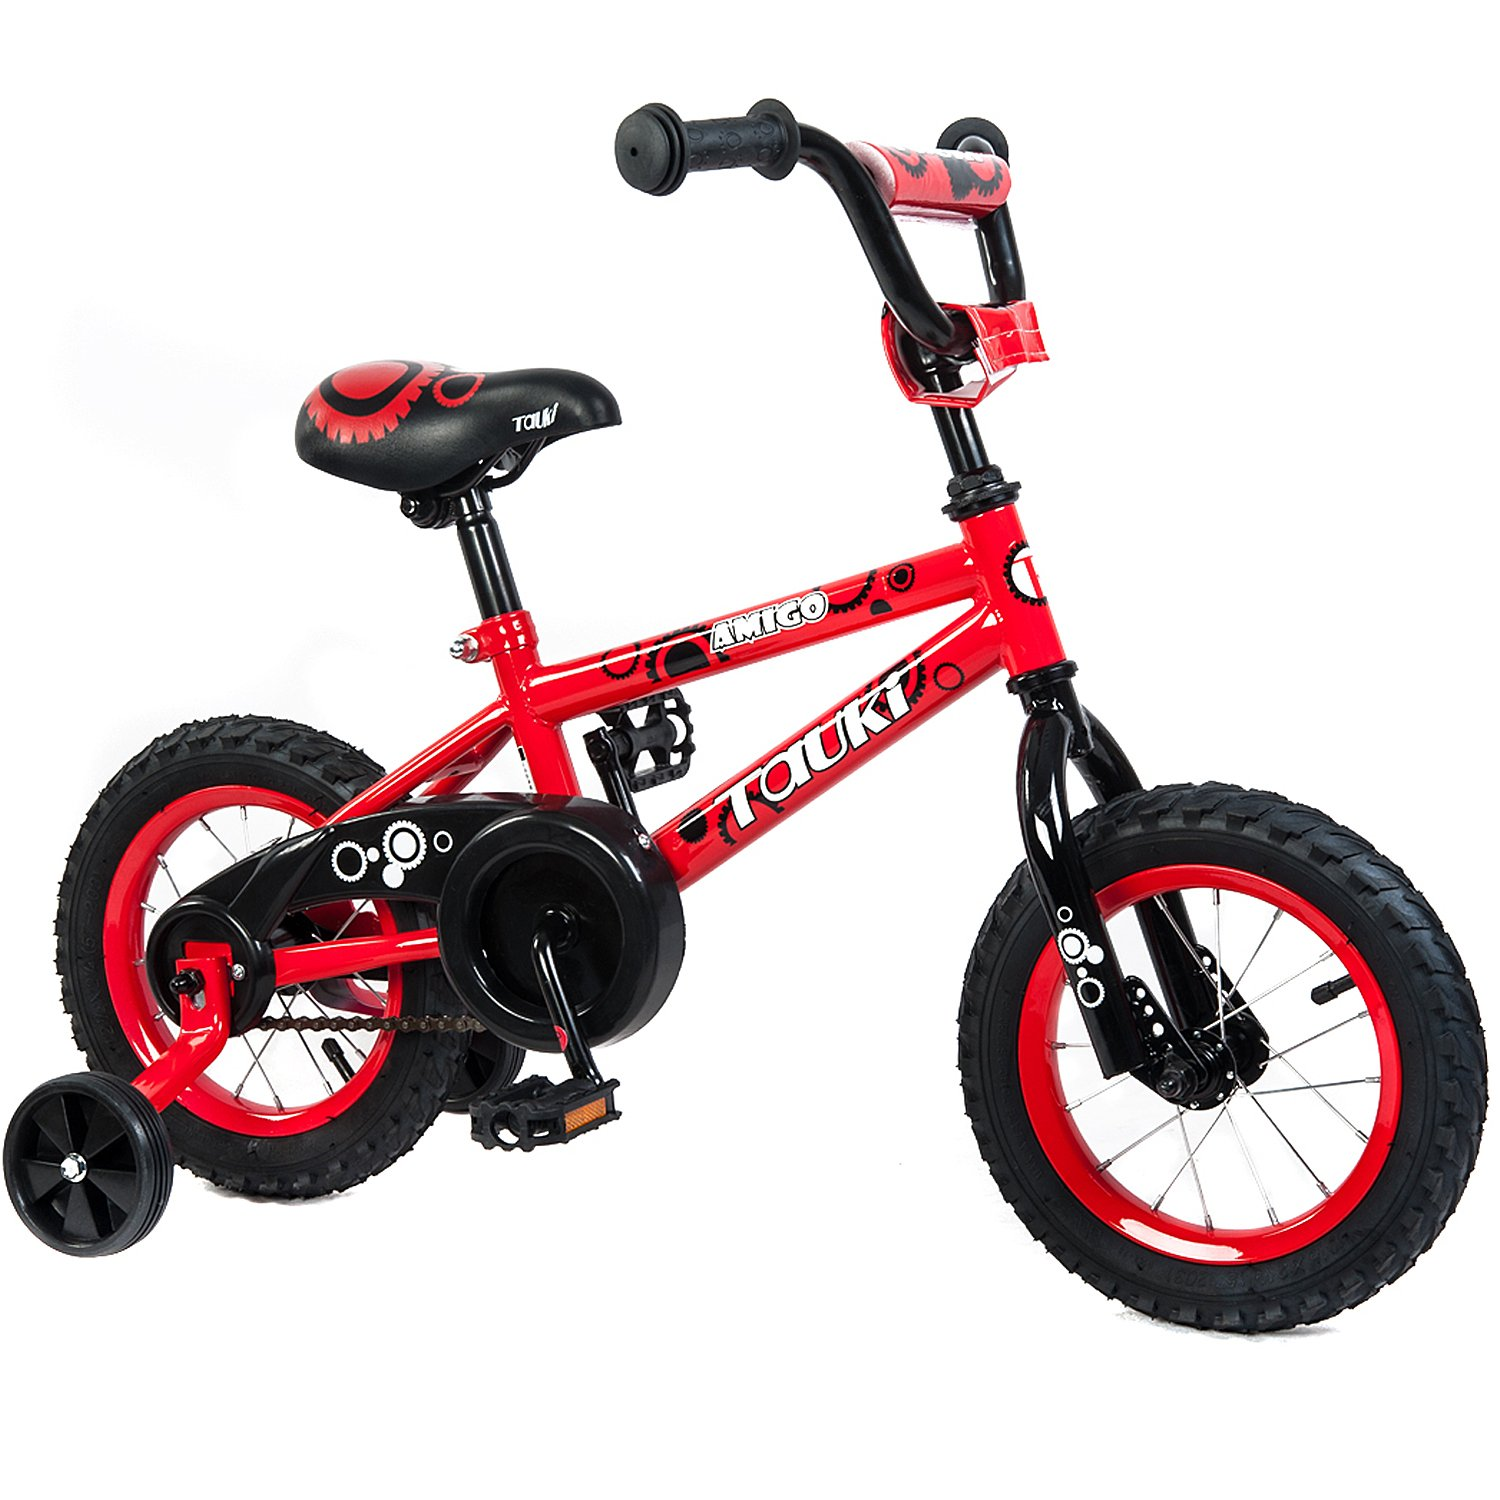 Bikes With Training Wheels For Older Kids Tauki amp trade Inch Kid Bike